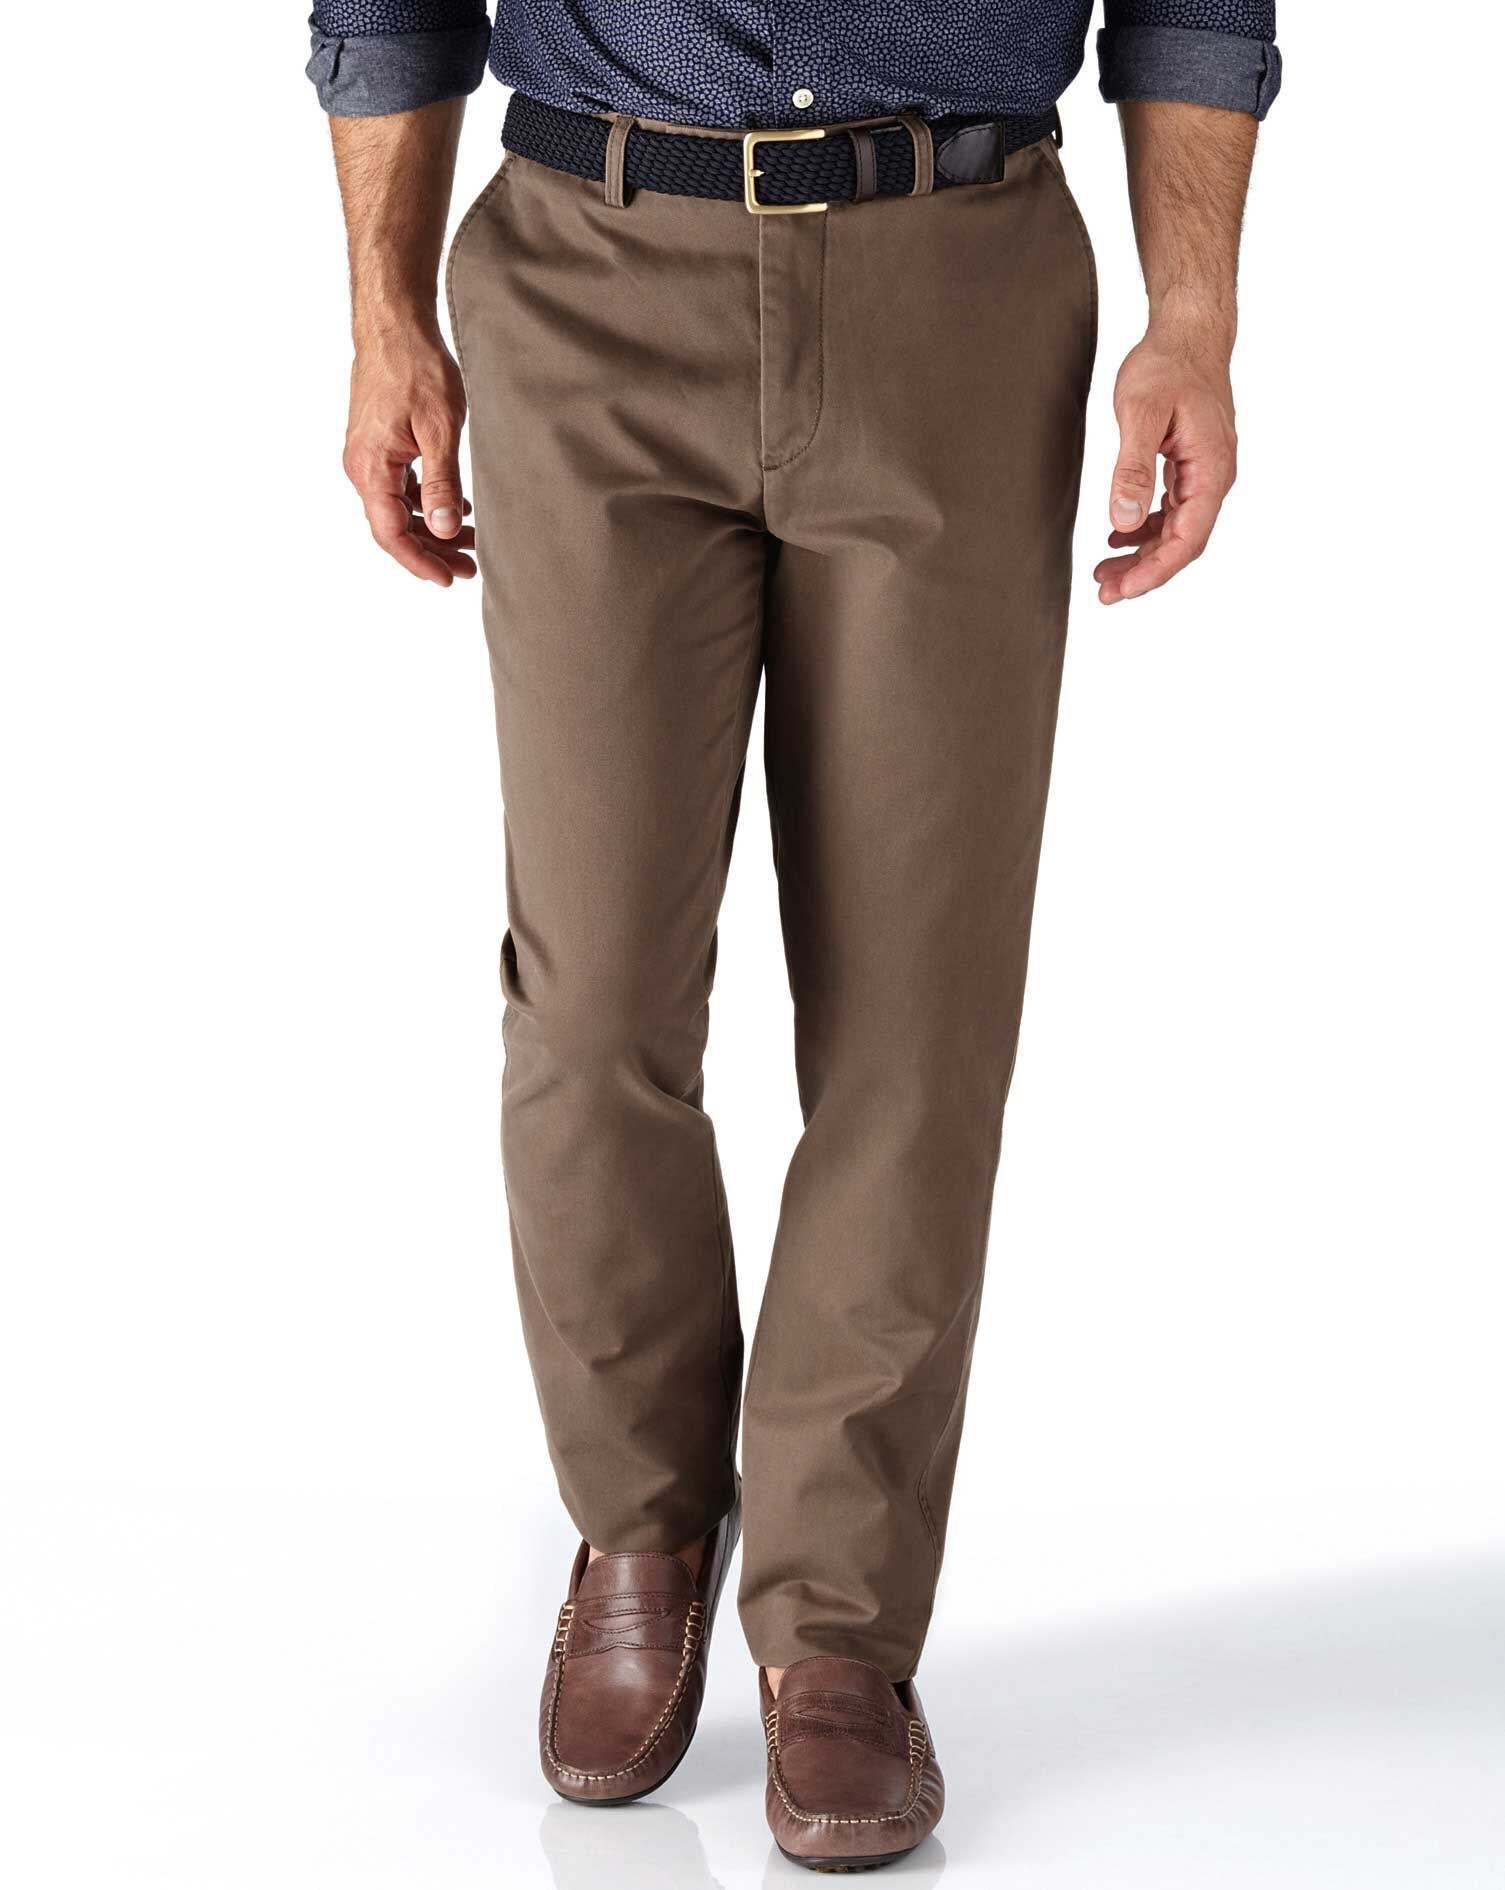 Light Brown Extra Slim Fit Flat Front Cotton Chino Trousers Size W30 L38 by Charles Tyrwhitt